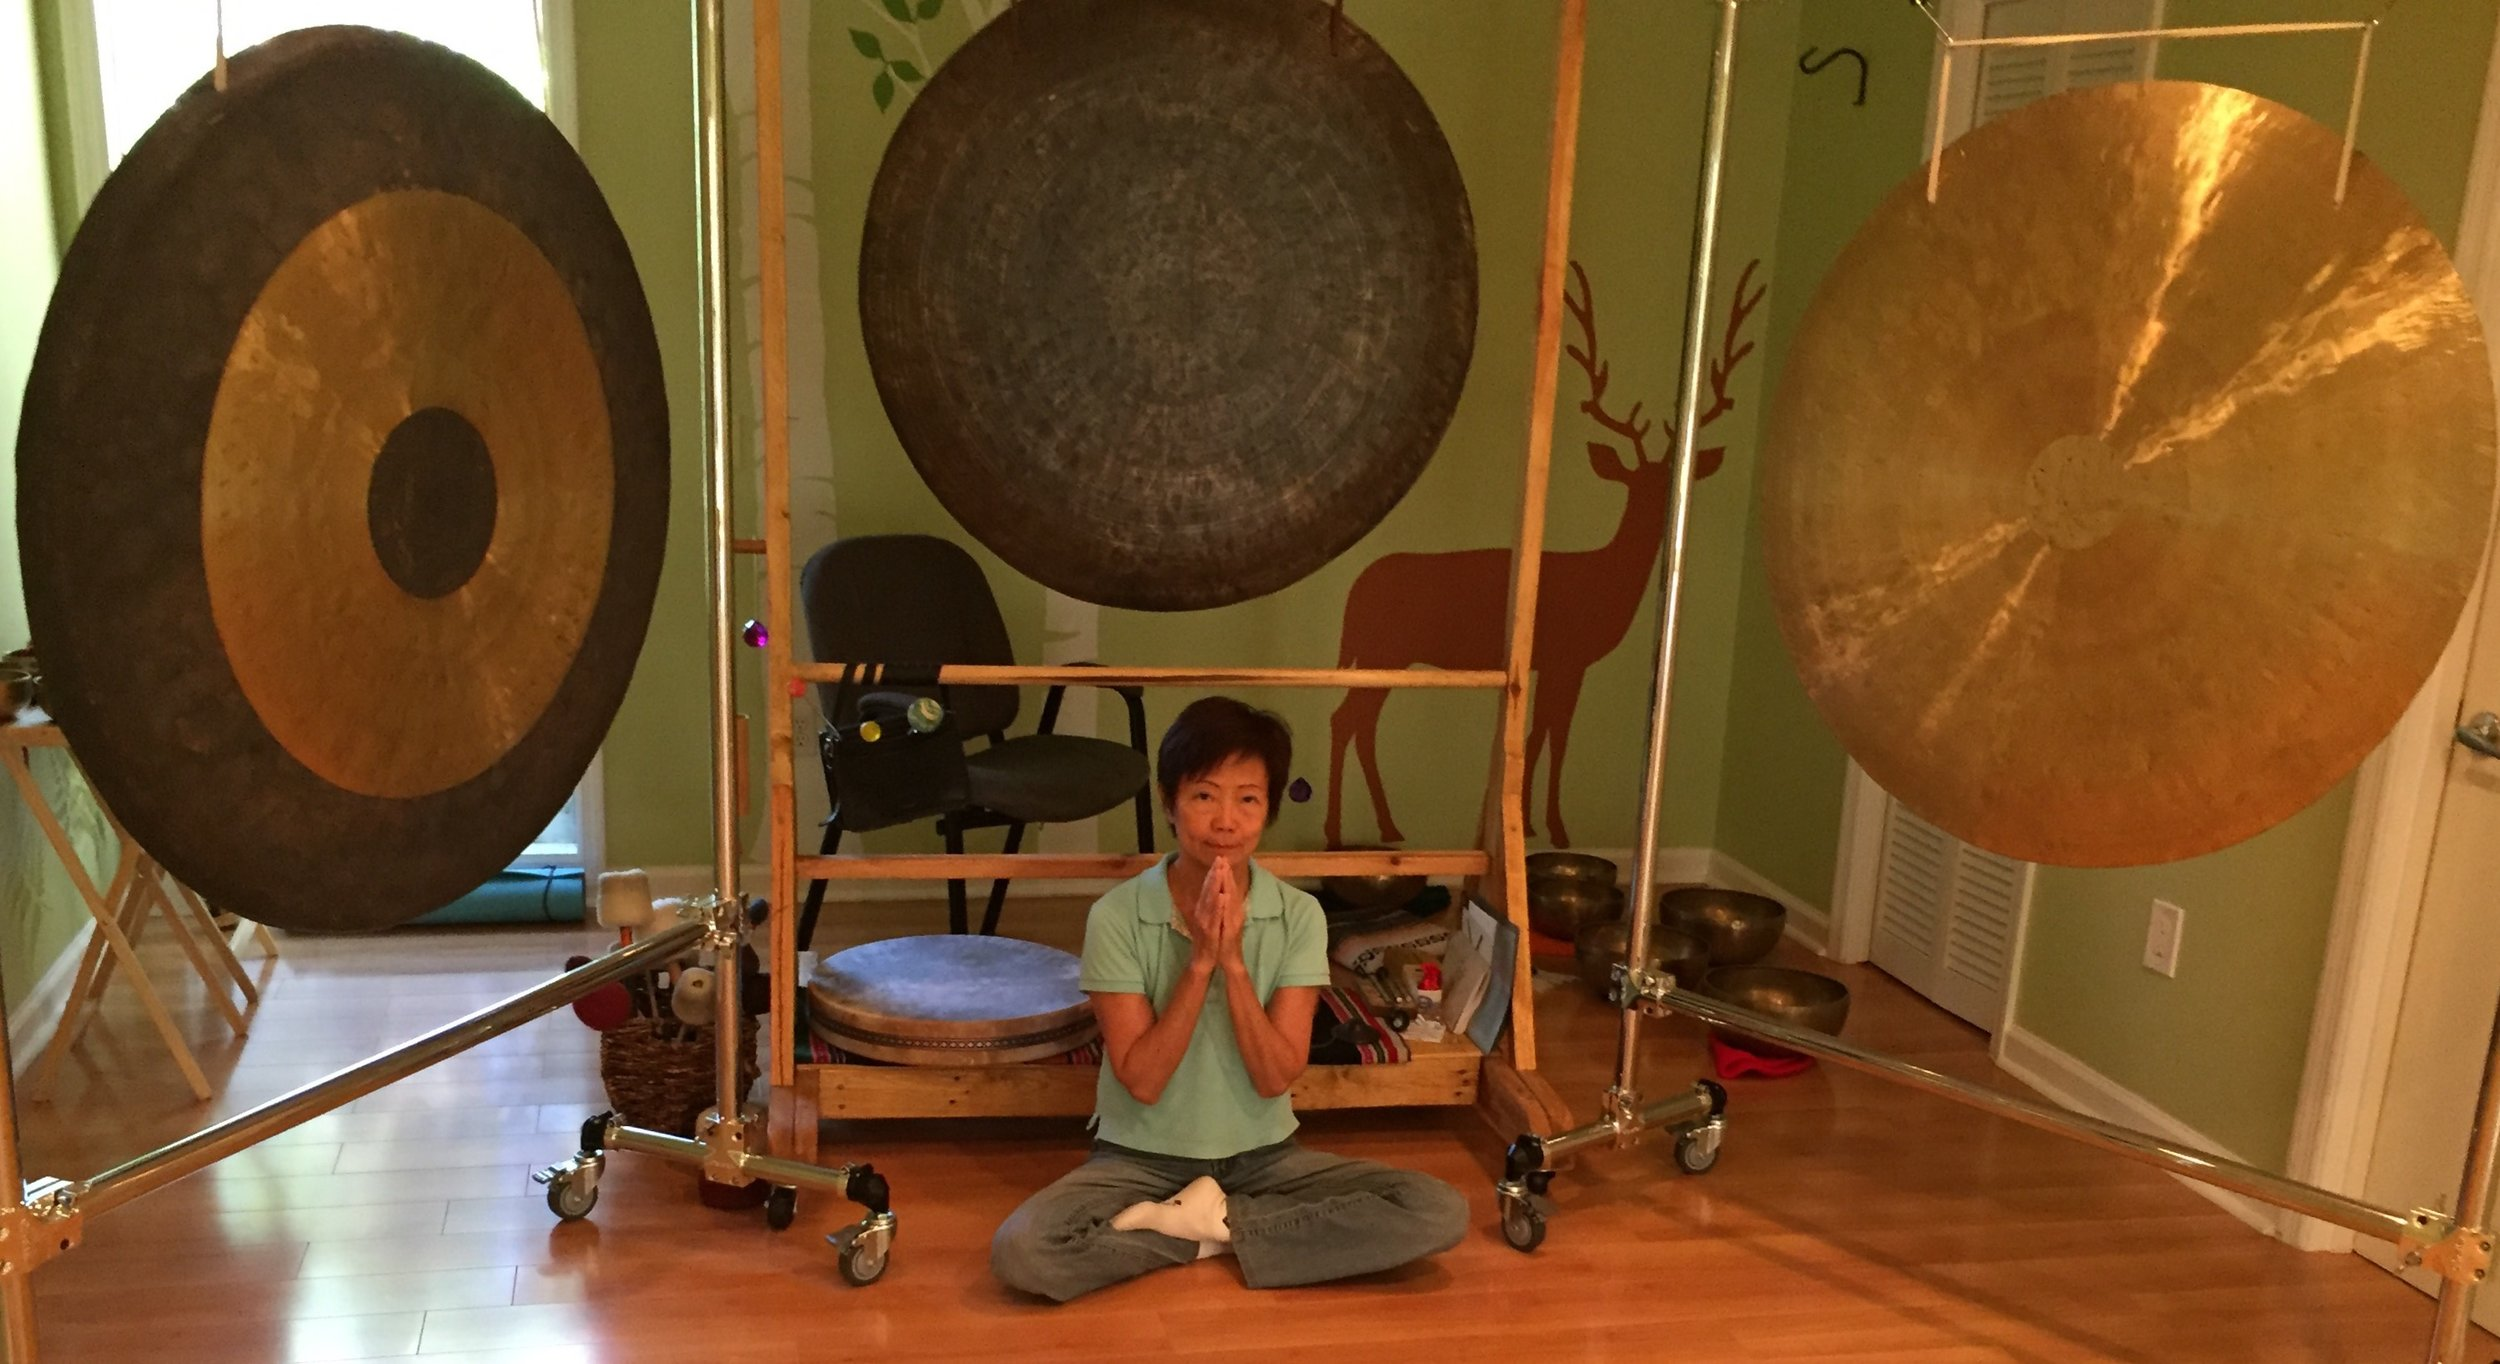 Expressing my gratitude the day after Hurricane Matthew. No damage to The Energy Center, my practice and gong studio.